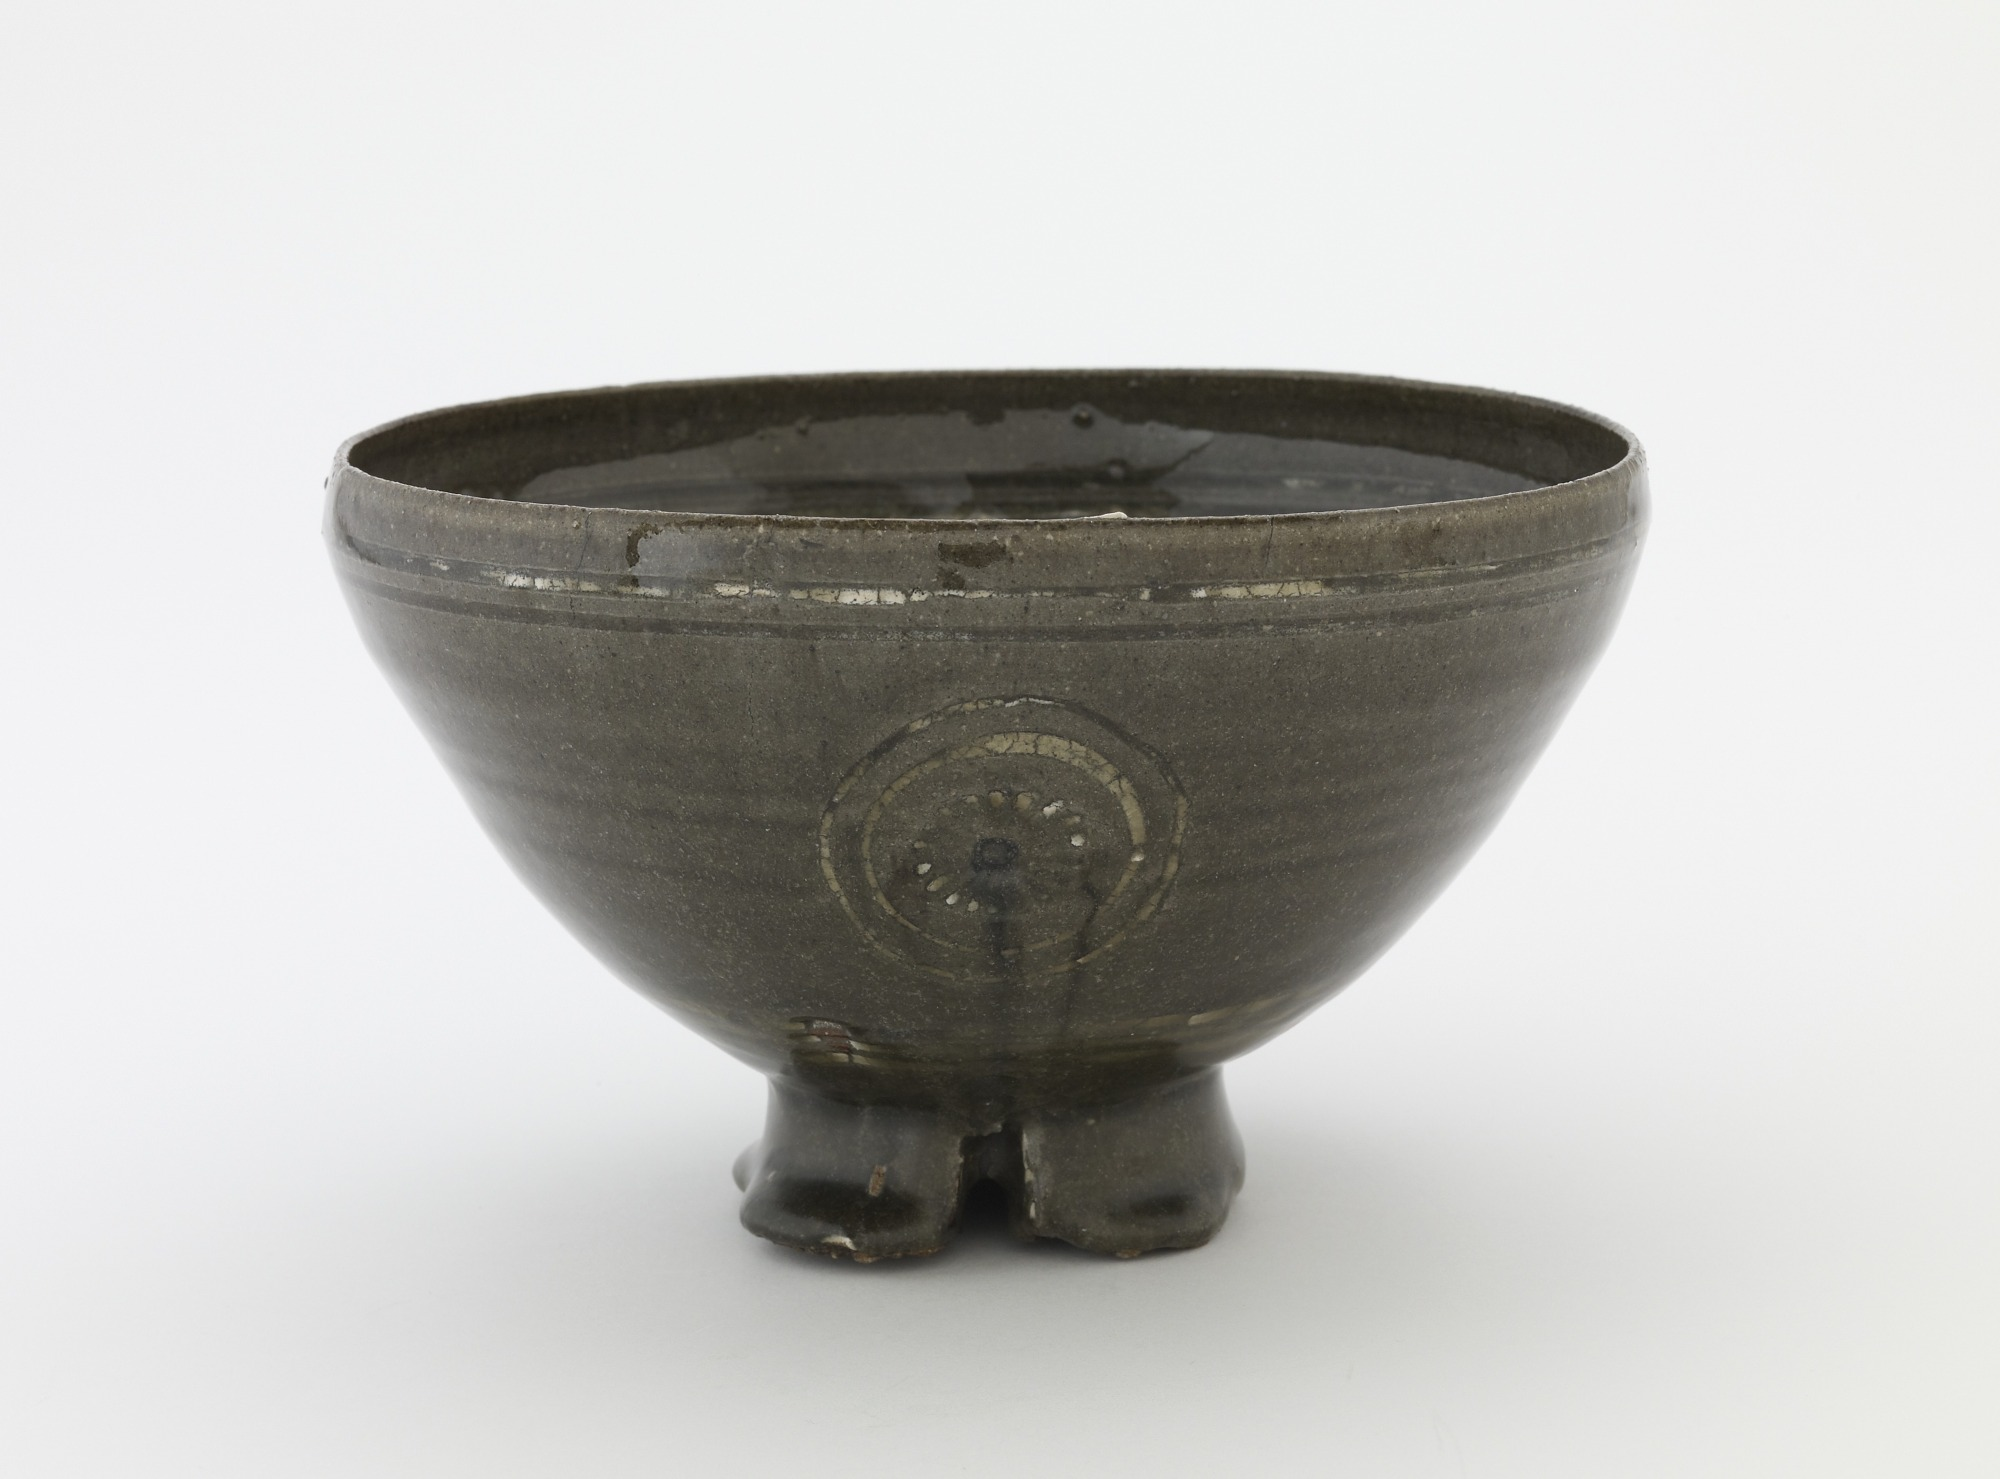 Tea bowl in style of inlaid Goryeo celadon ware